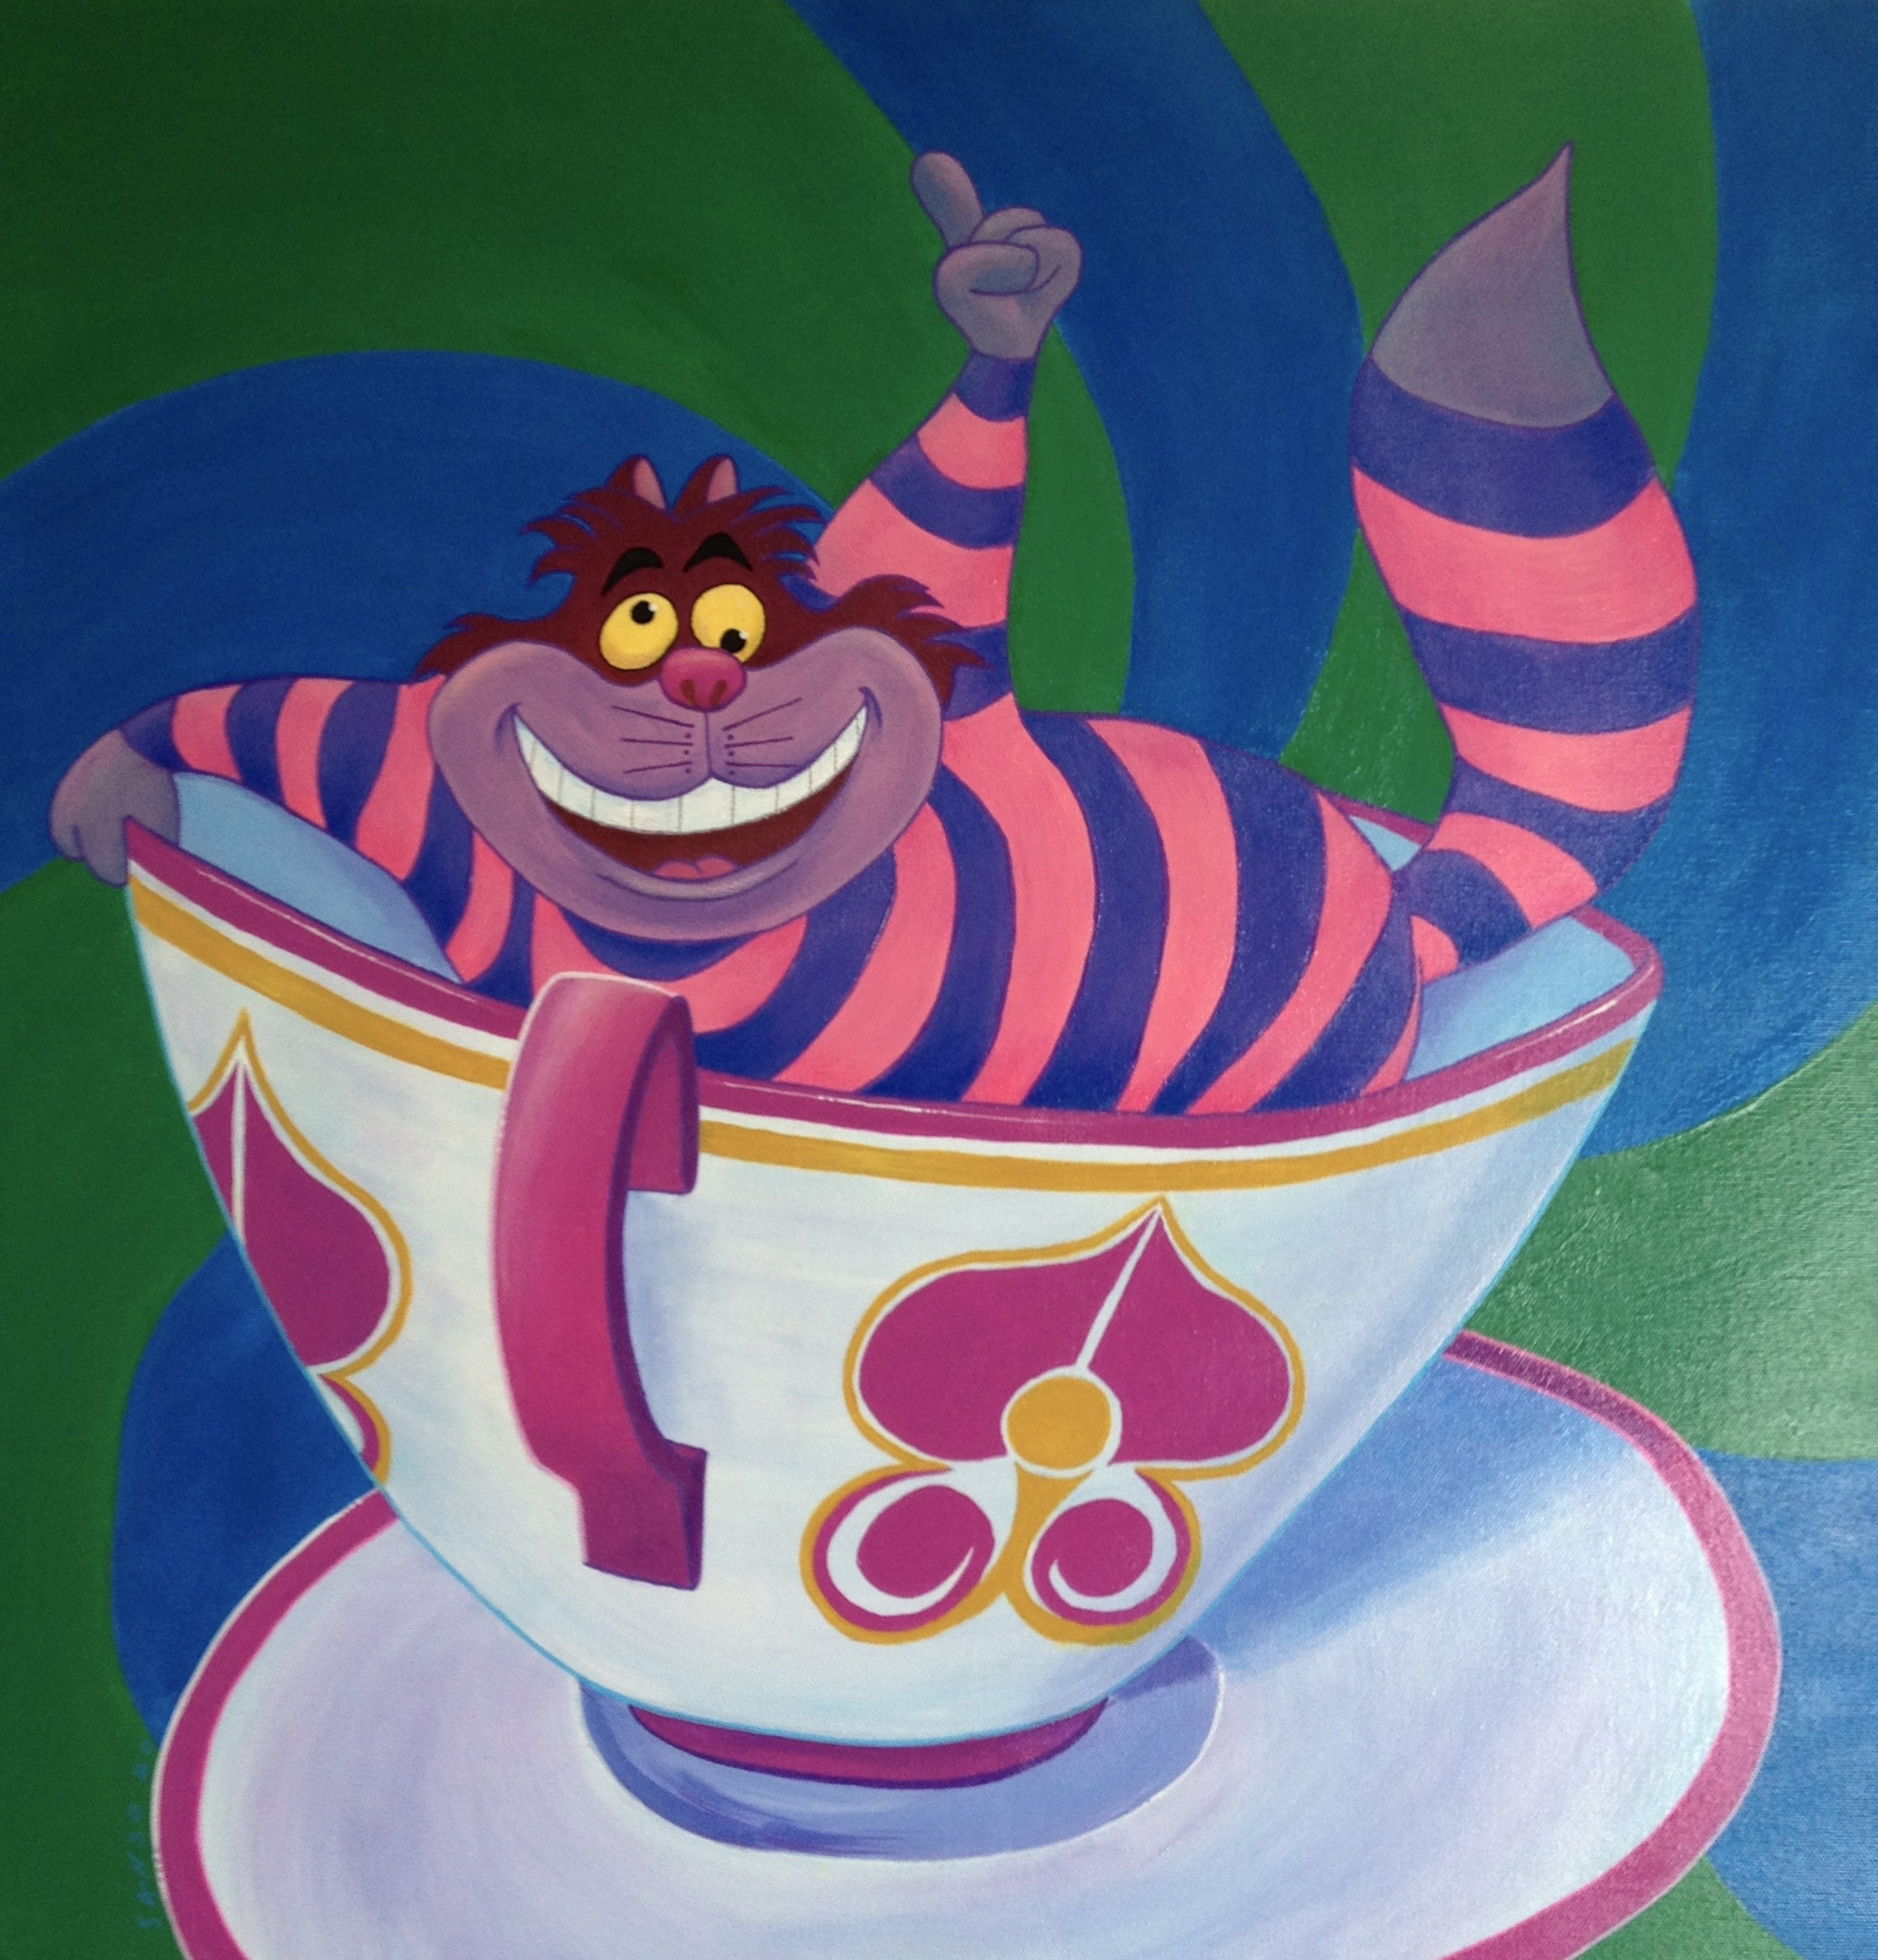 Cheshire's Teacup